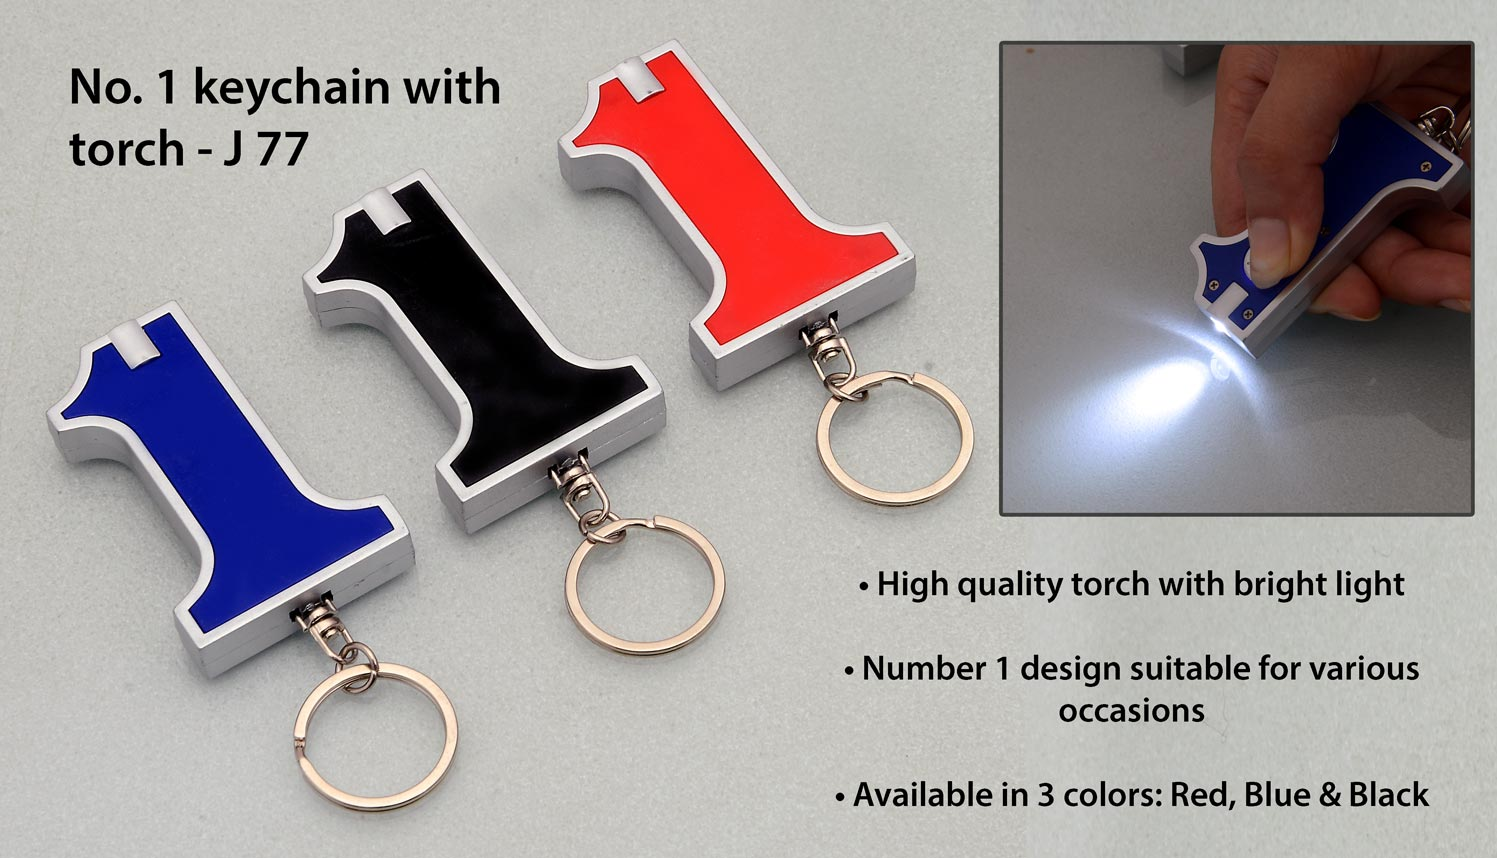 No. 1 keychain with torch